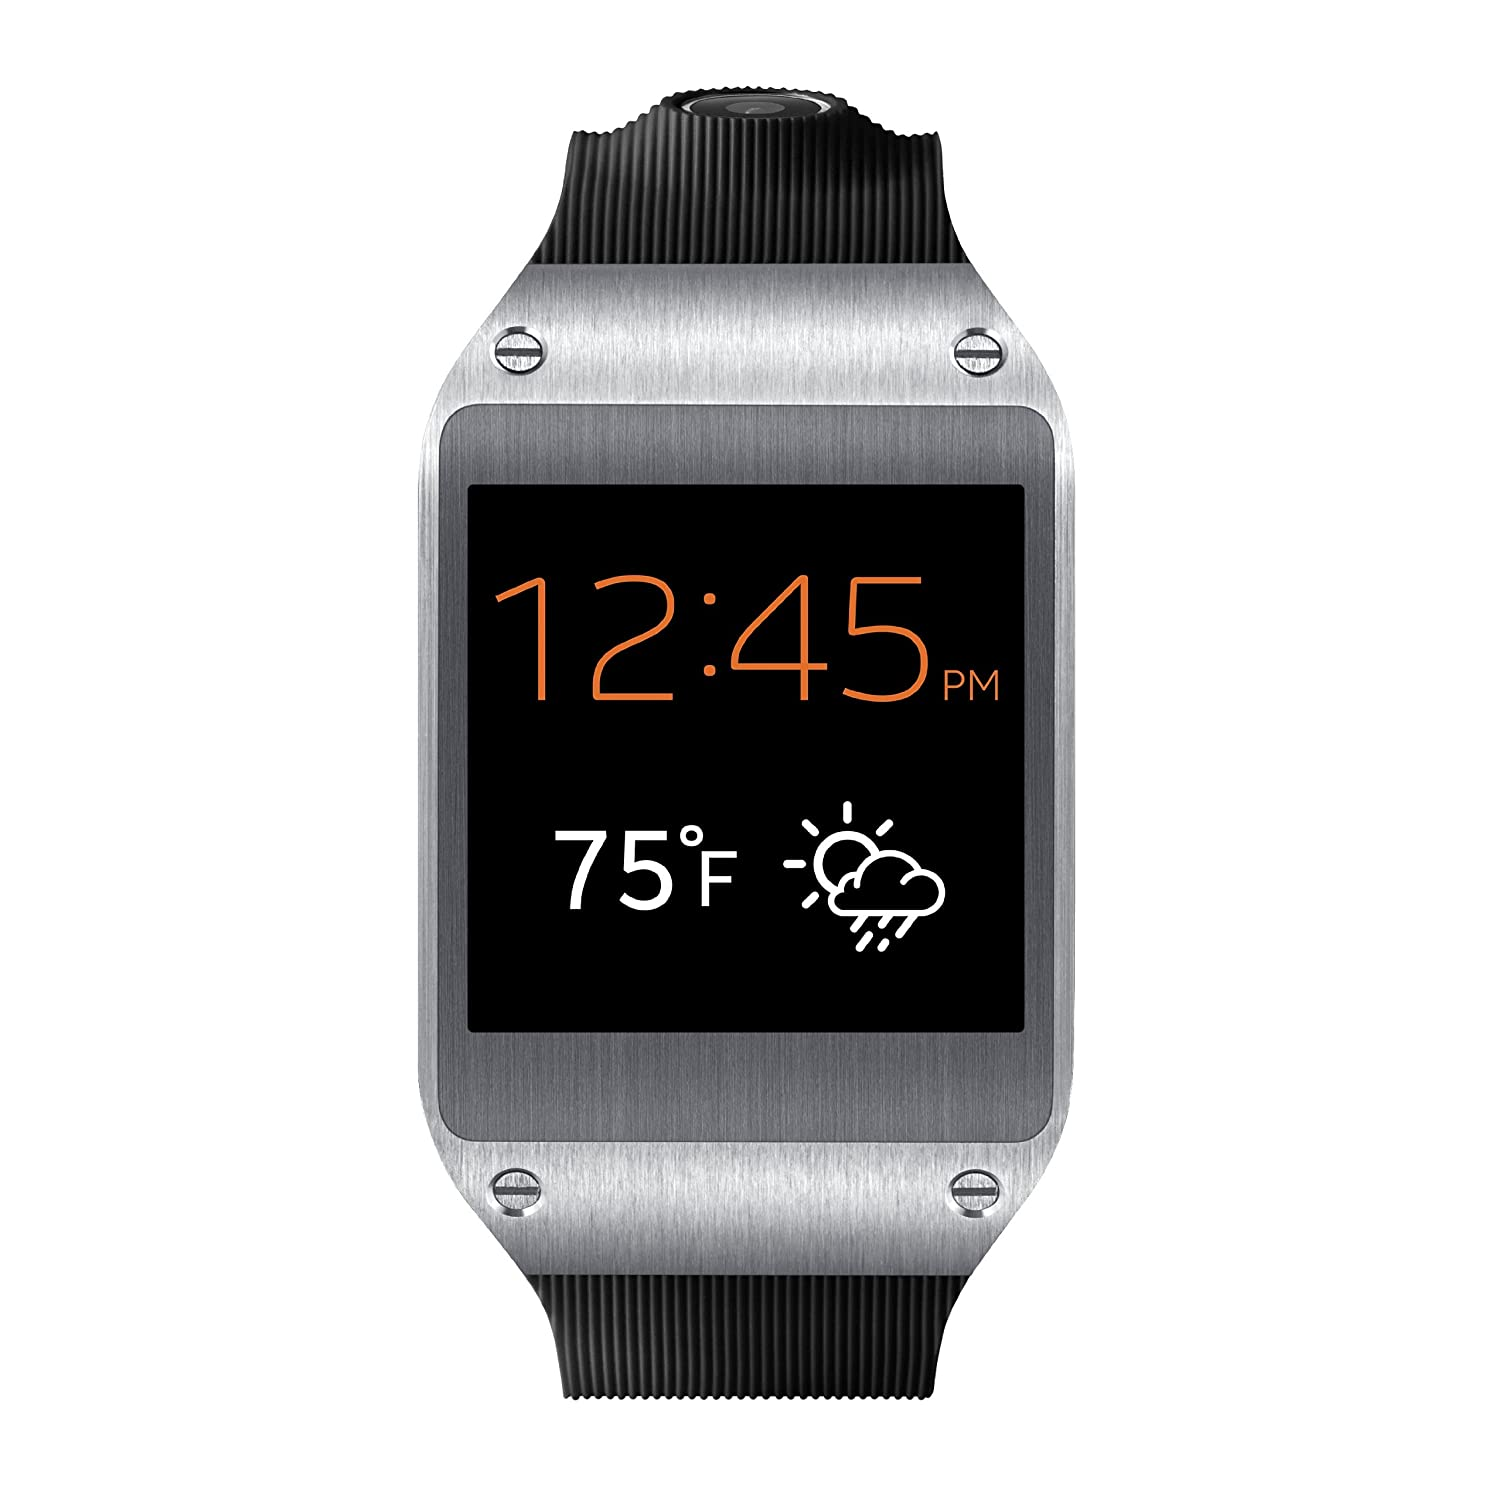 the forwardslash watches wagner frontier samsung andrew review a by gear